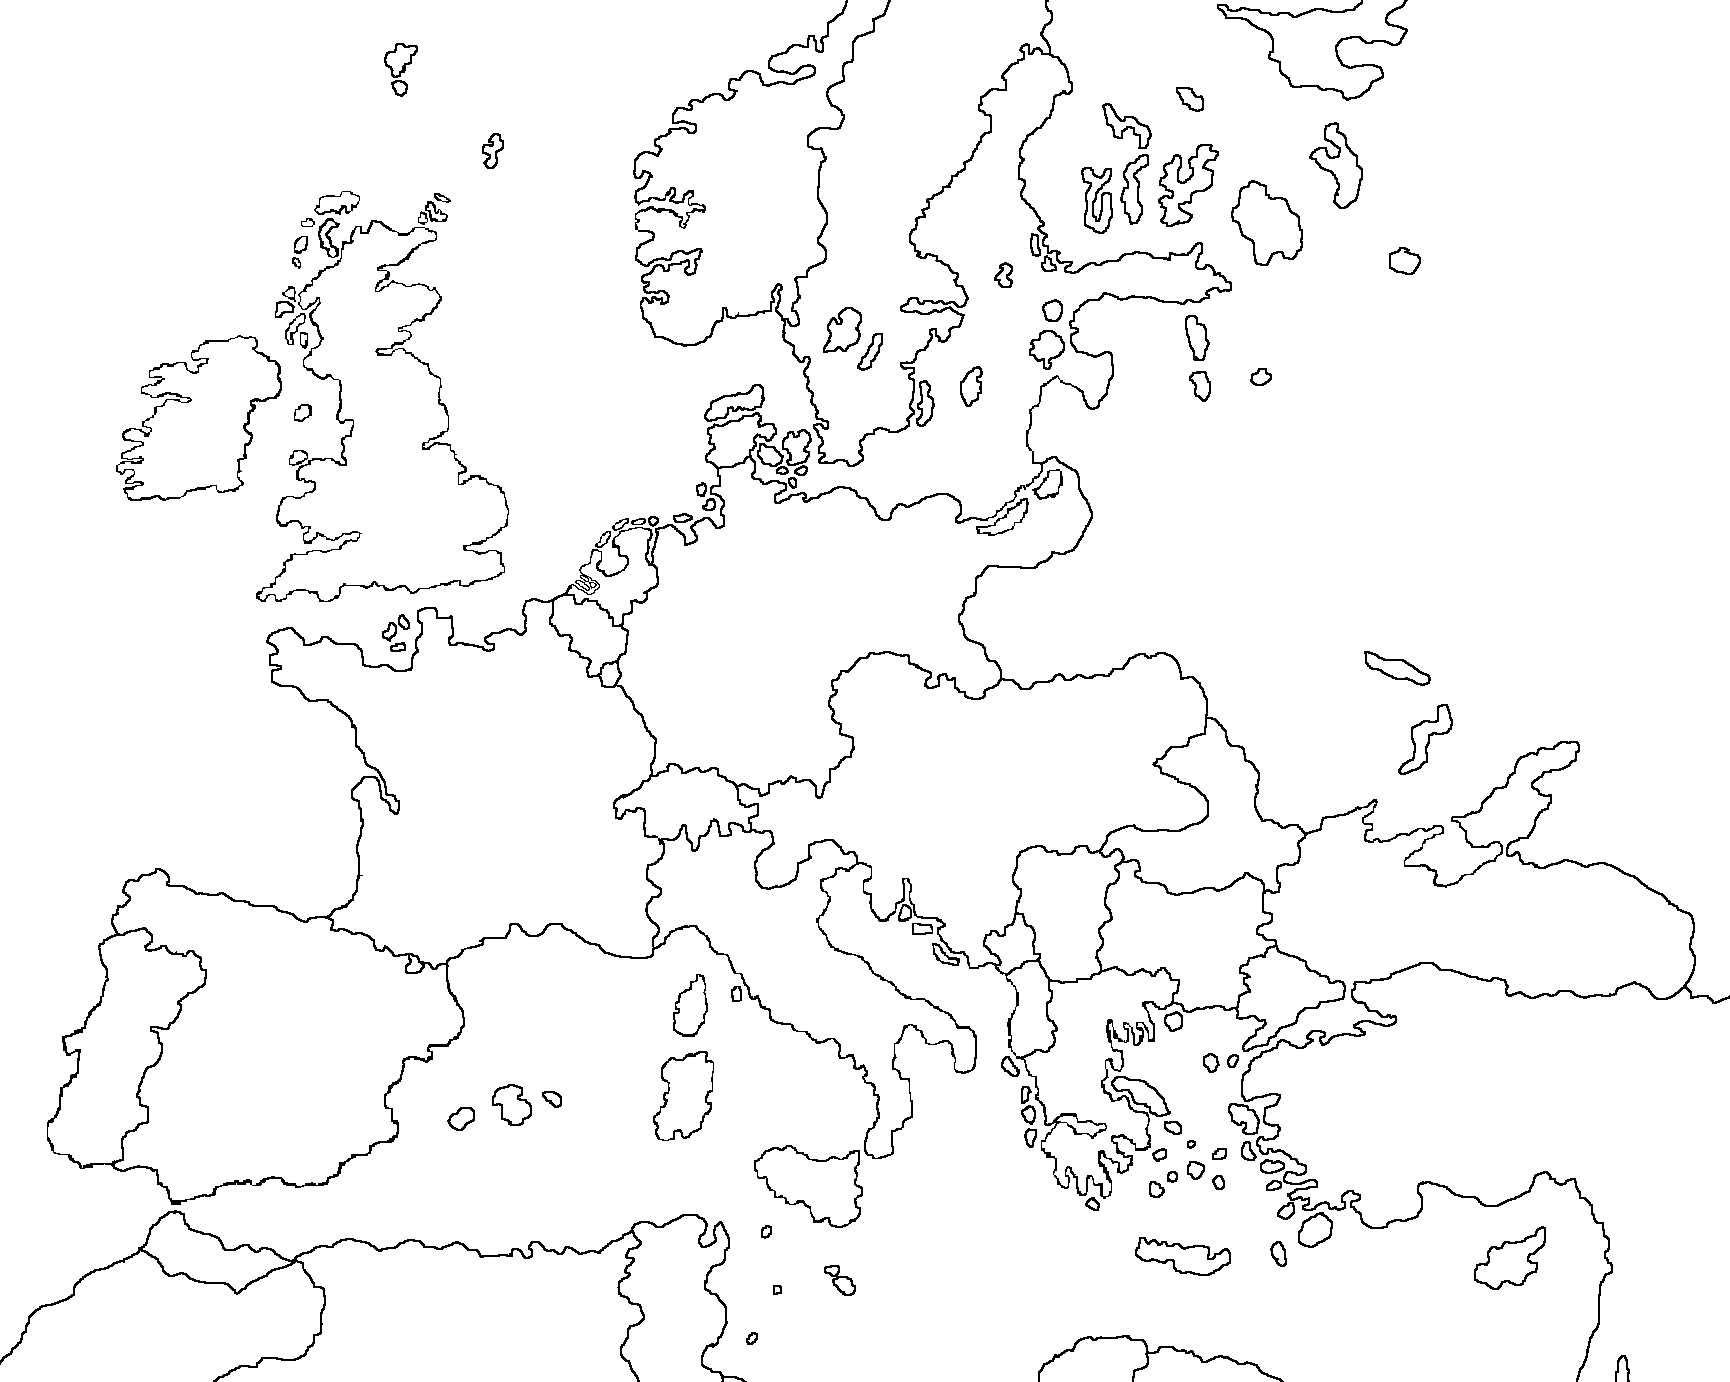 outline map europe 1914